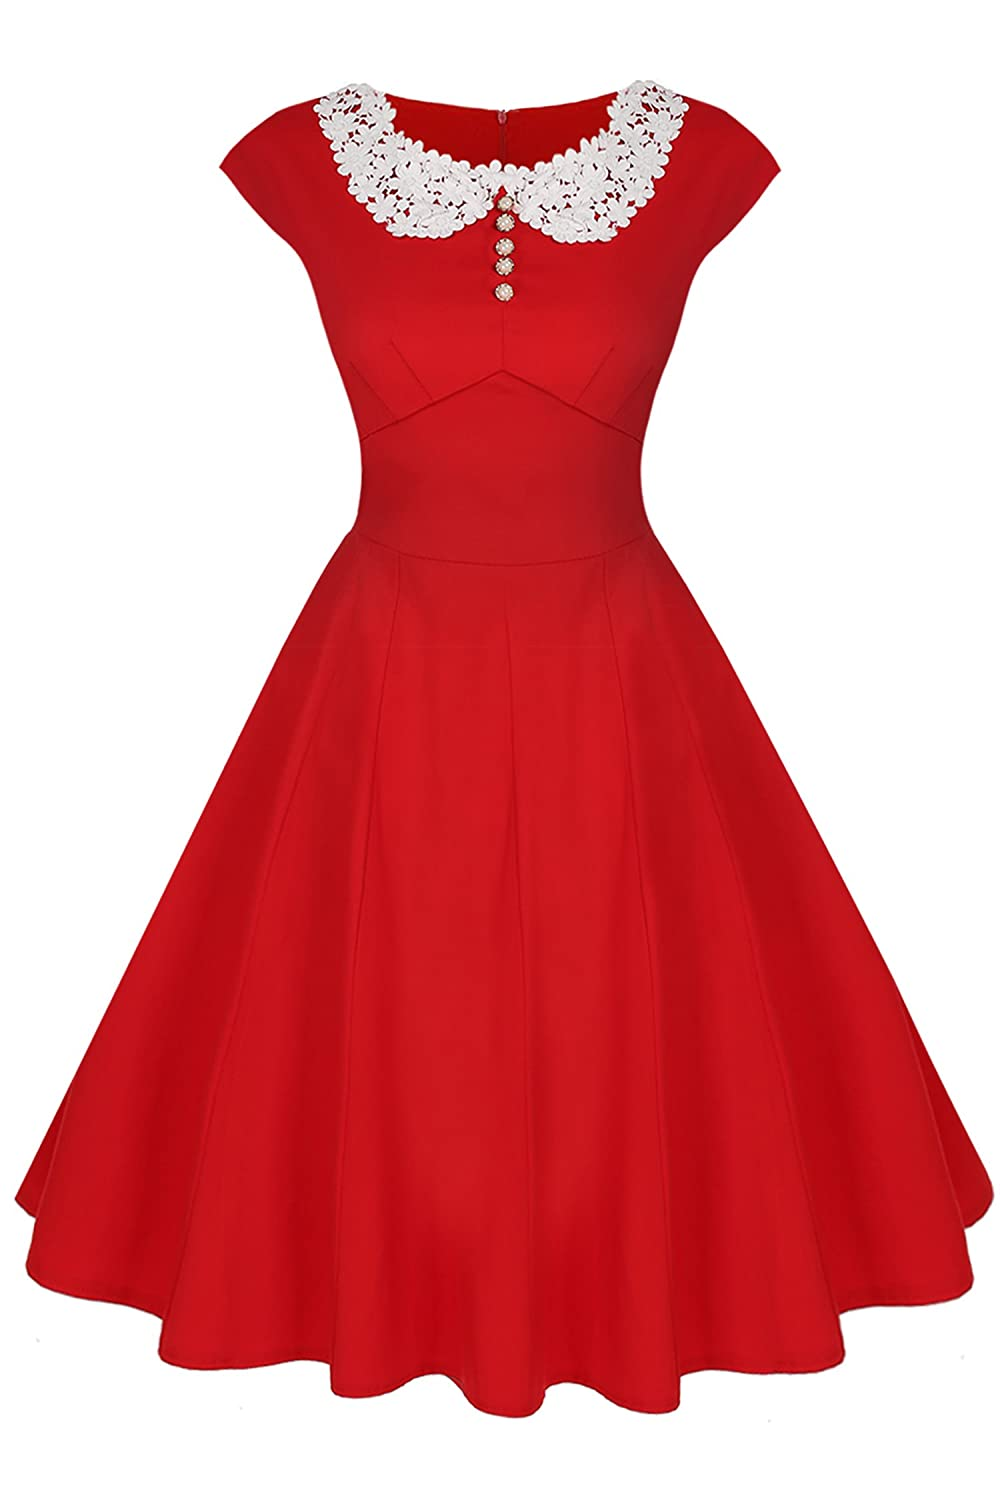 1950s Housewife Dress | 50s Day Dresses ACEVOG Womens Classy Vintage Audrey Hepburn Style 1940s Rockabilly Evening Dress $19.99 AT vintagedancer.com